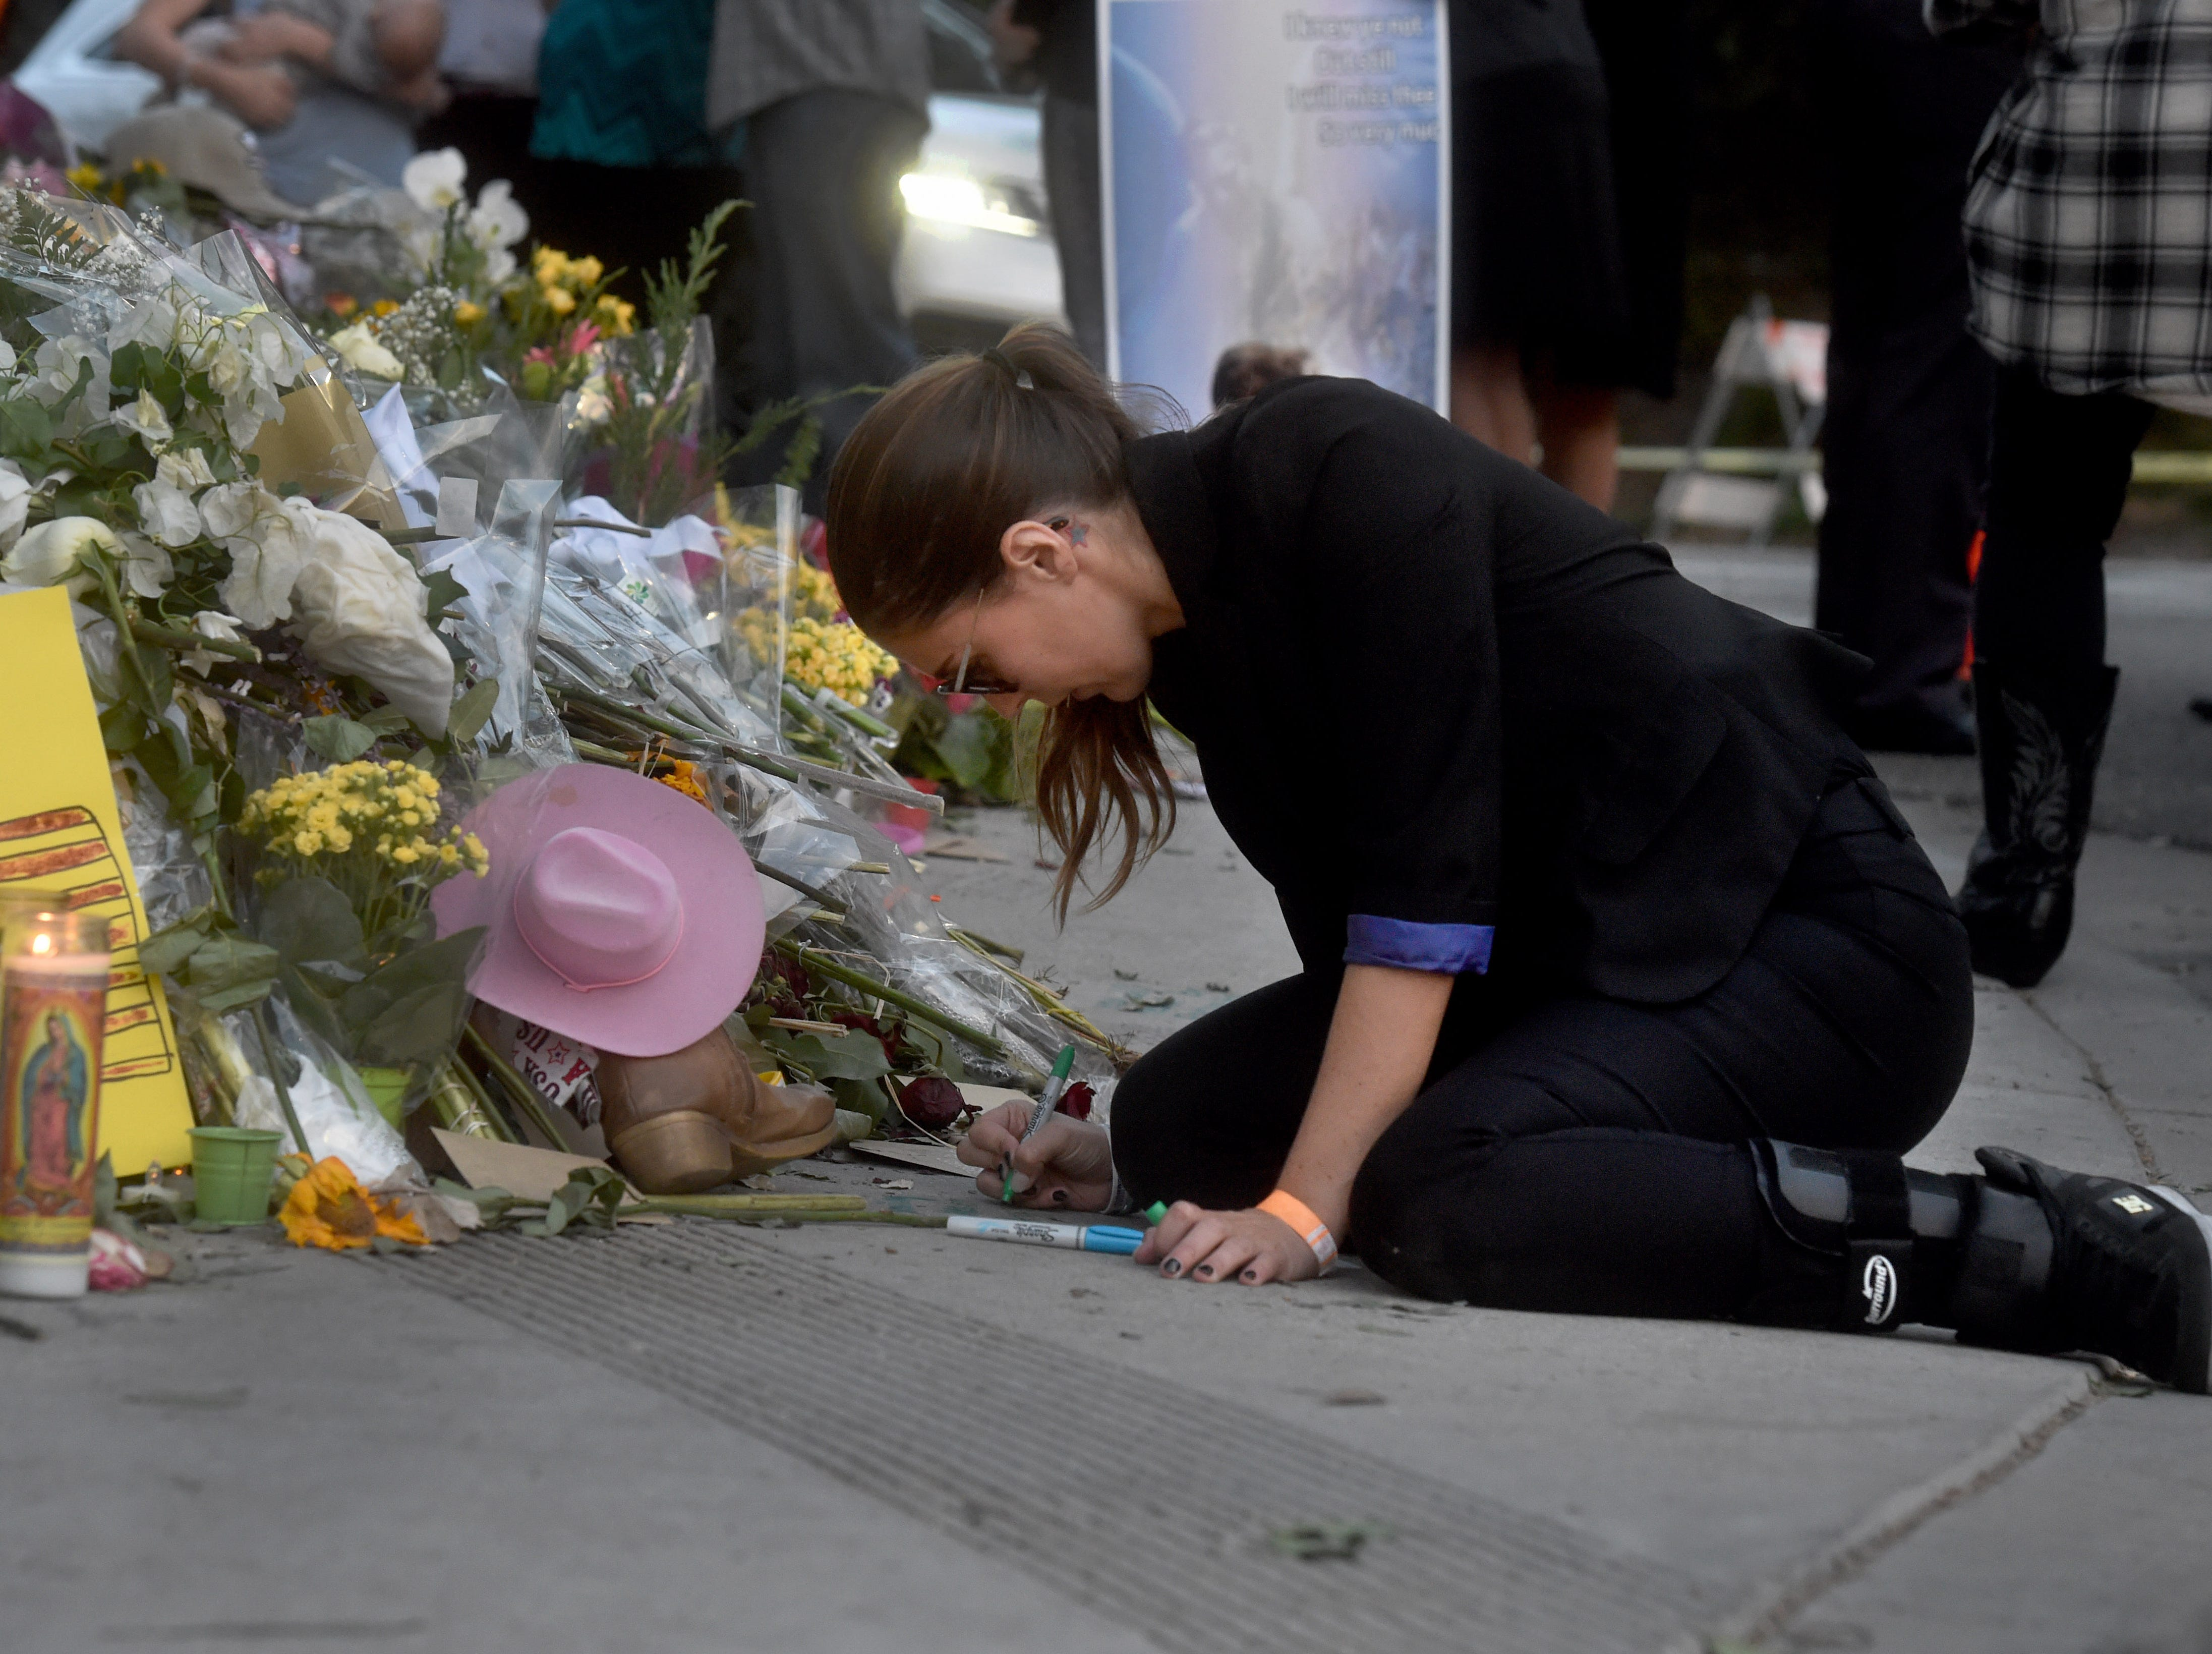 Margot Marty, of Thousand Oaks, writes a message on the sidewalk for Kristina Morisette, who was among those who died in the Nov. 7 shooting at the Borderline Bar & Grill.